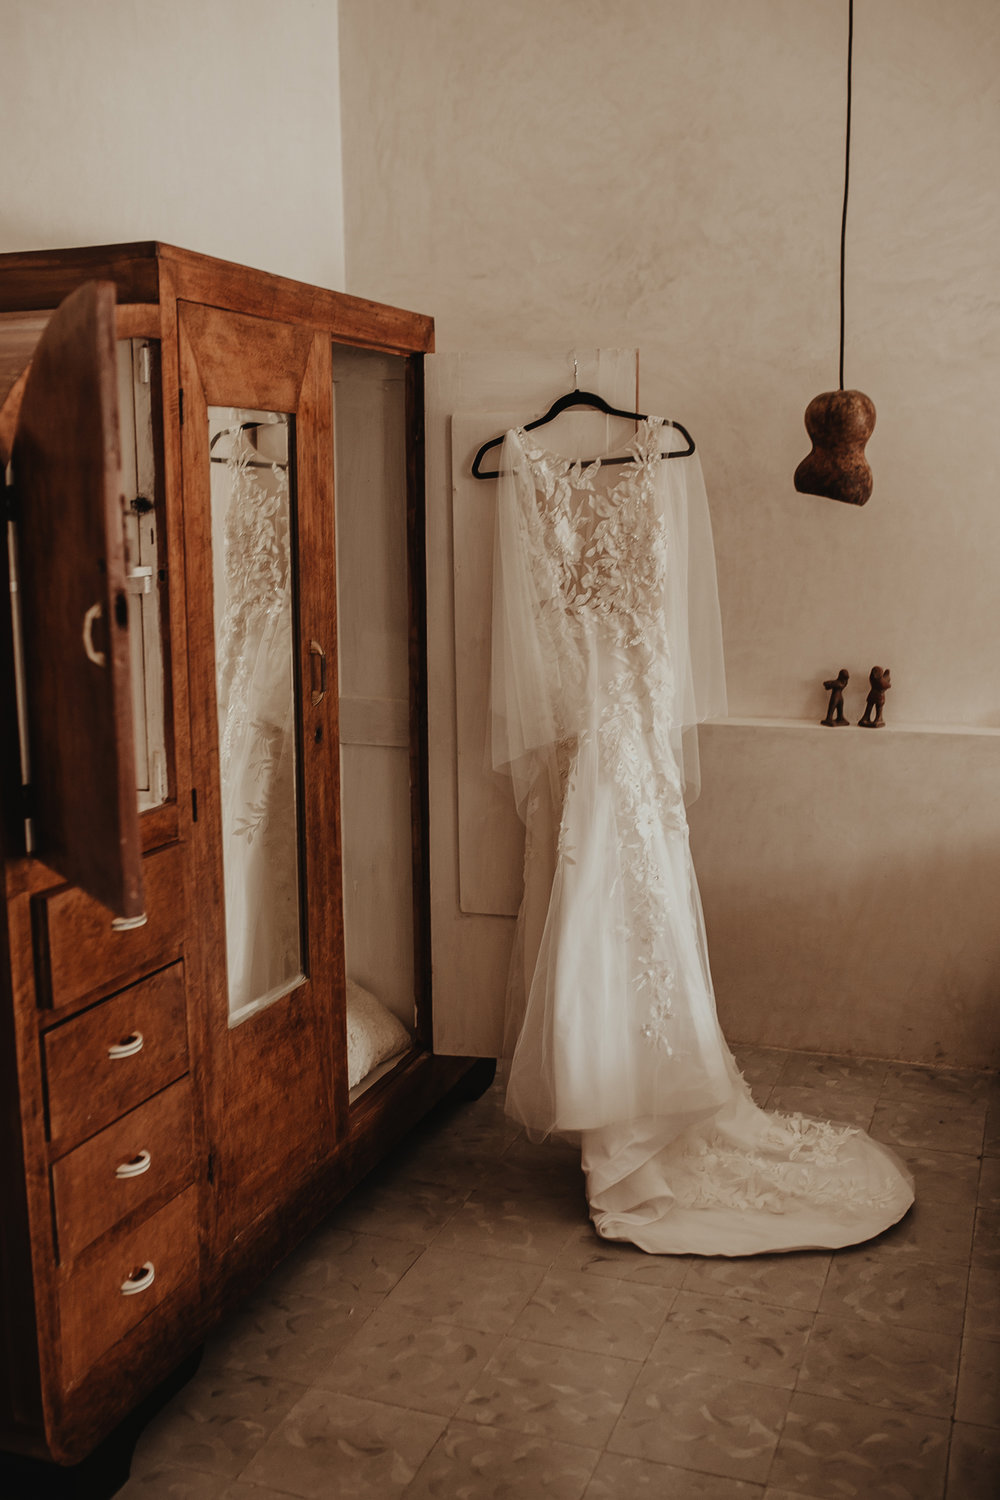 0010p&a_Hacienda__WeddingDestination_Weddingmerida_BodaMexico_FotografoDeBodas_WeddingGay.jpg